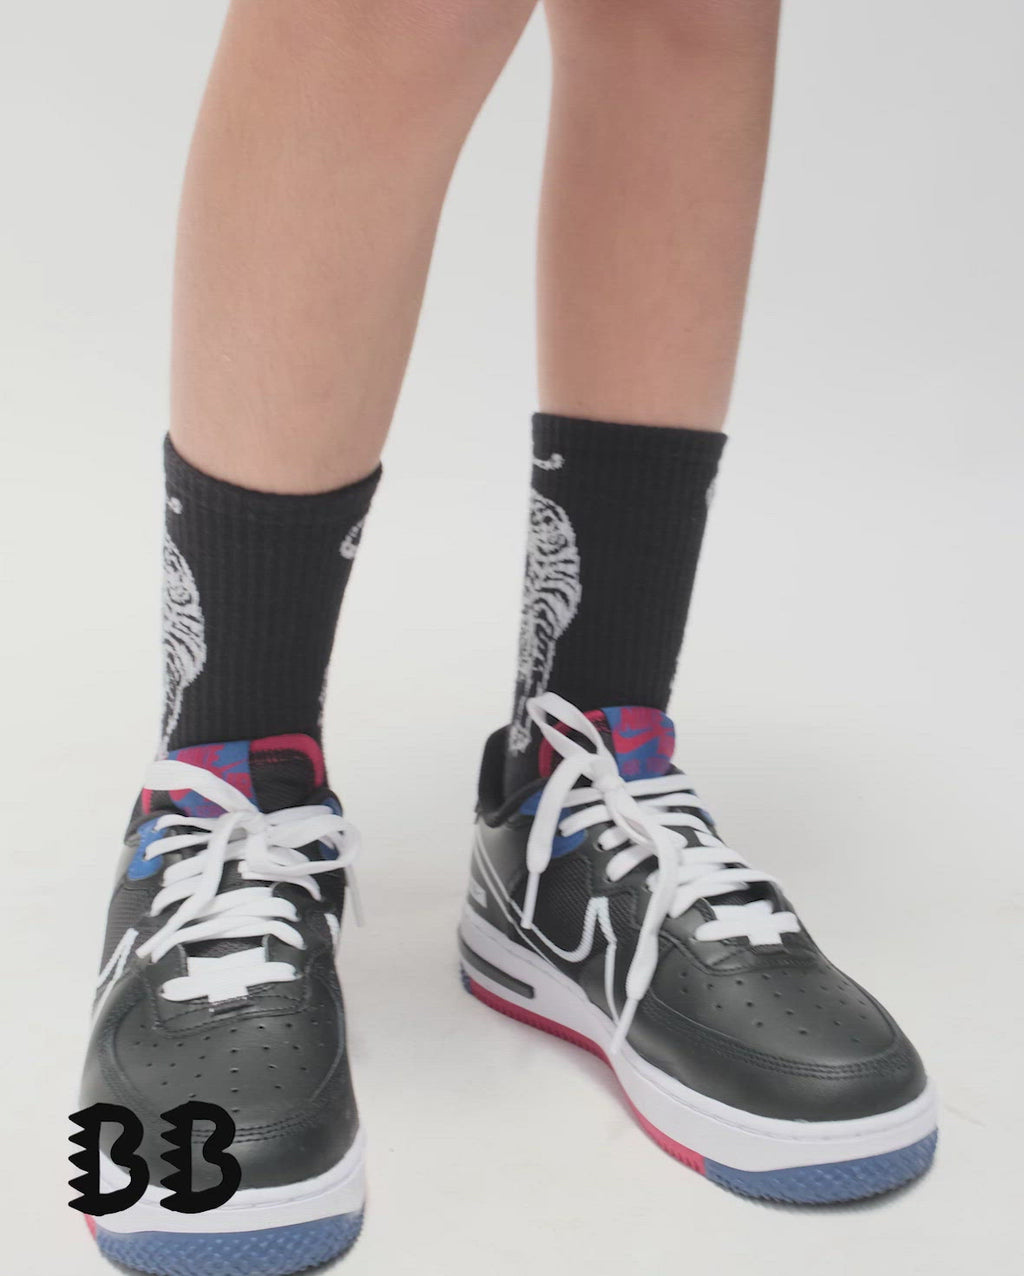 Black Band of Boys Crouching Tiger Skate Socks from The Collectibles range video on model.